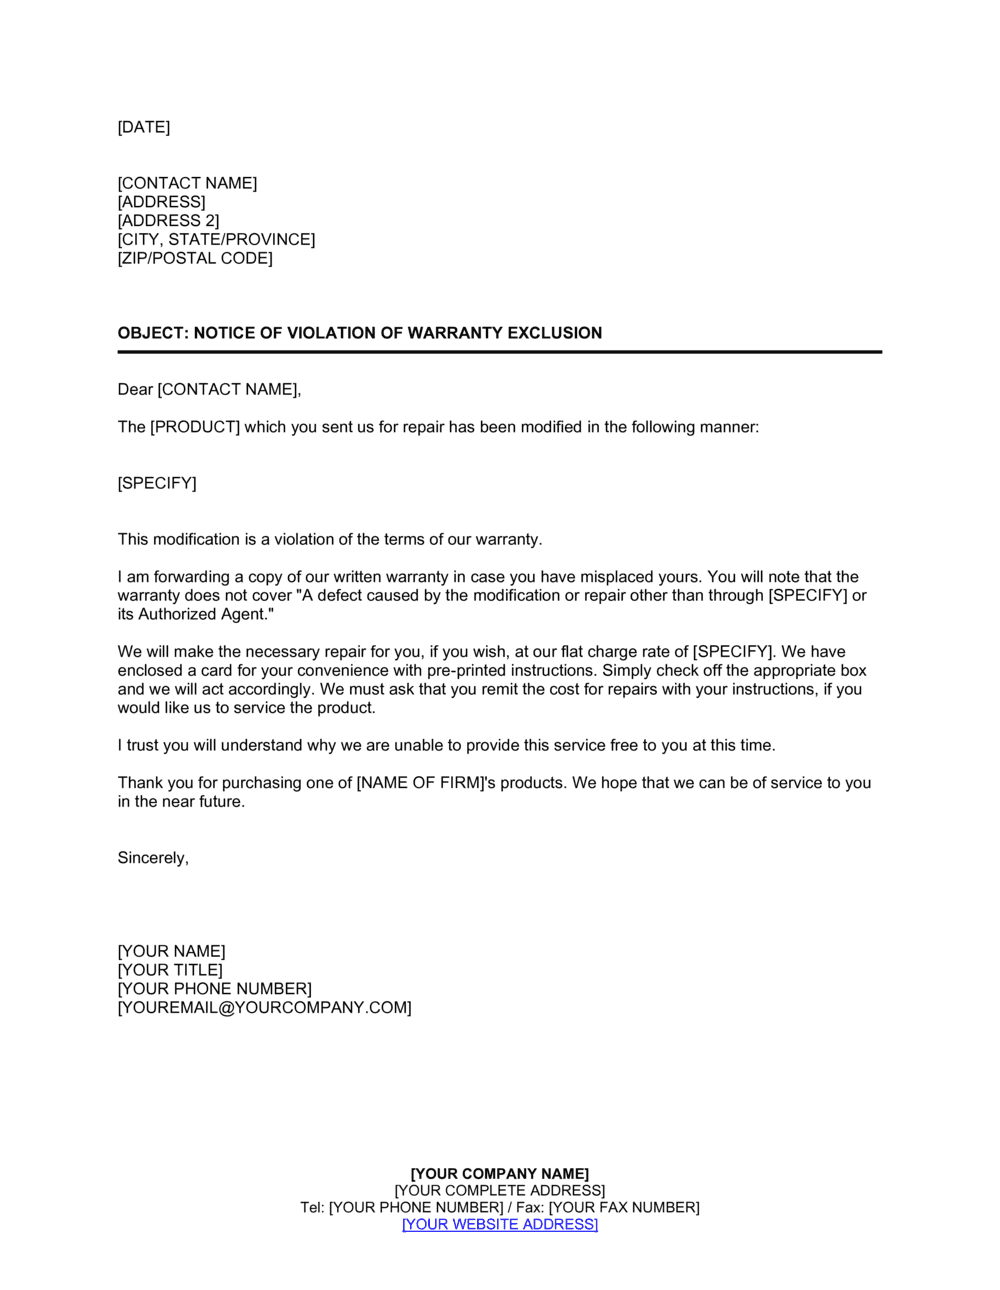 Business-in-a-Box's Reply Notice of Violation of Warranty Exclusion Template